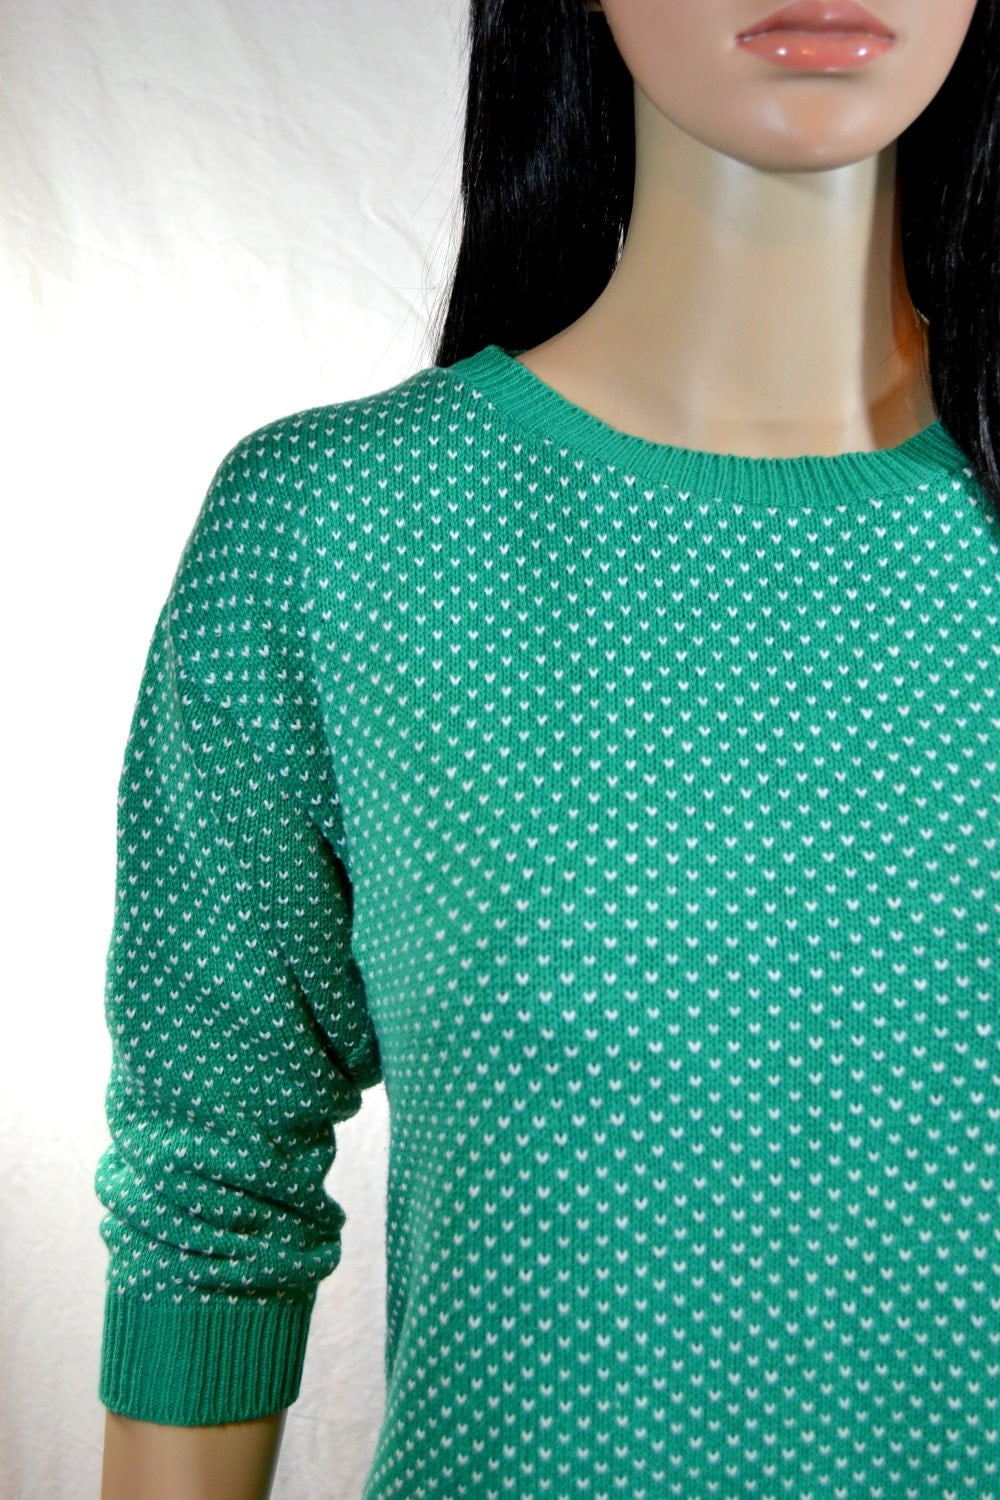 1980's SLOUCH SWEATER by R J Studio Made in USA size medium Green & White Heart Polkadot